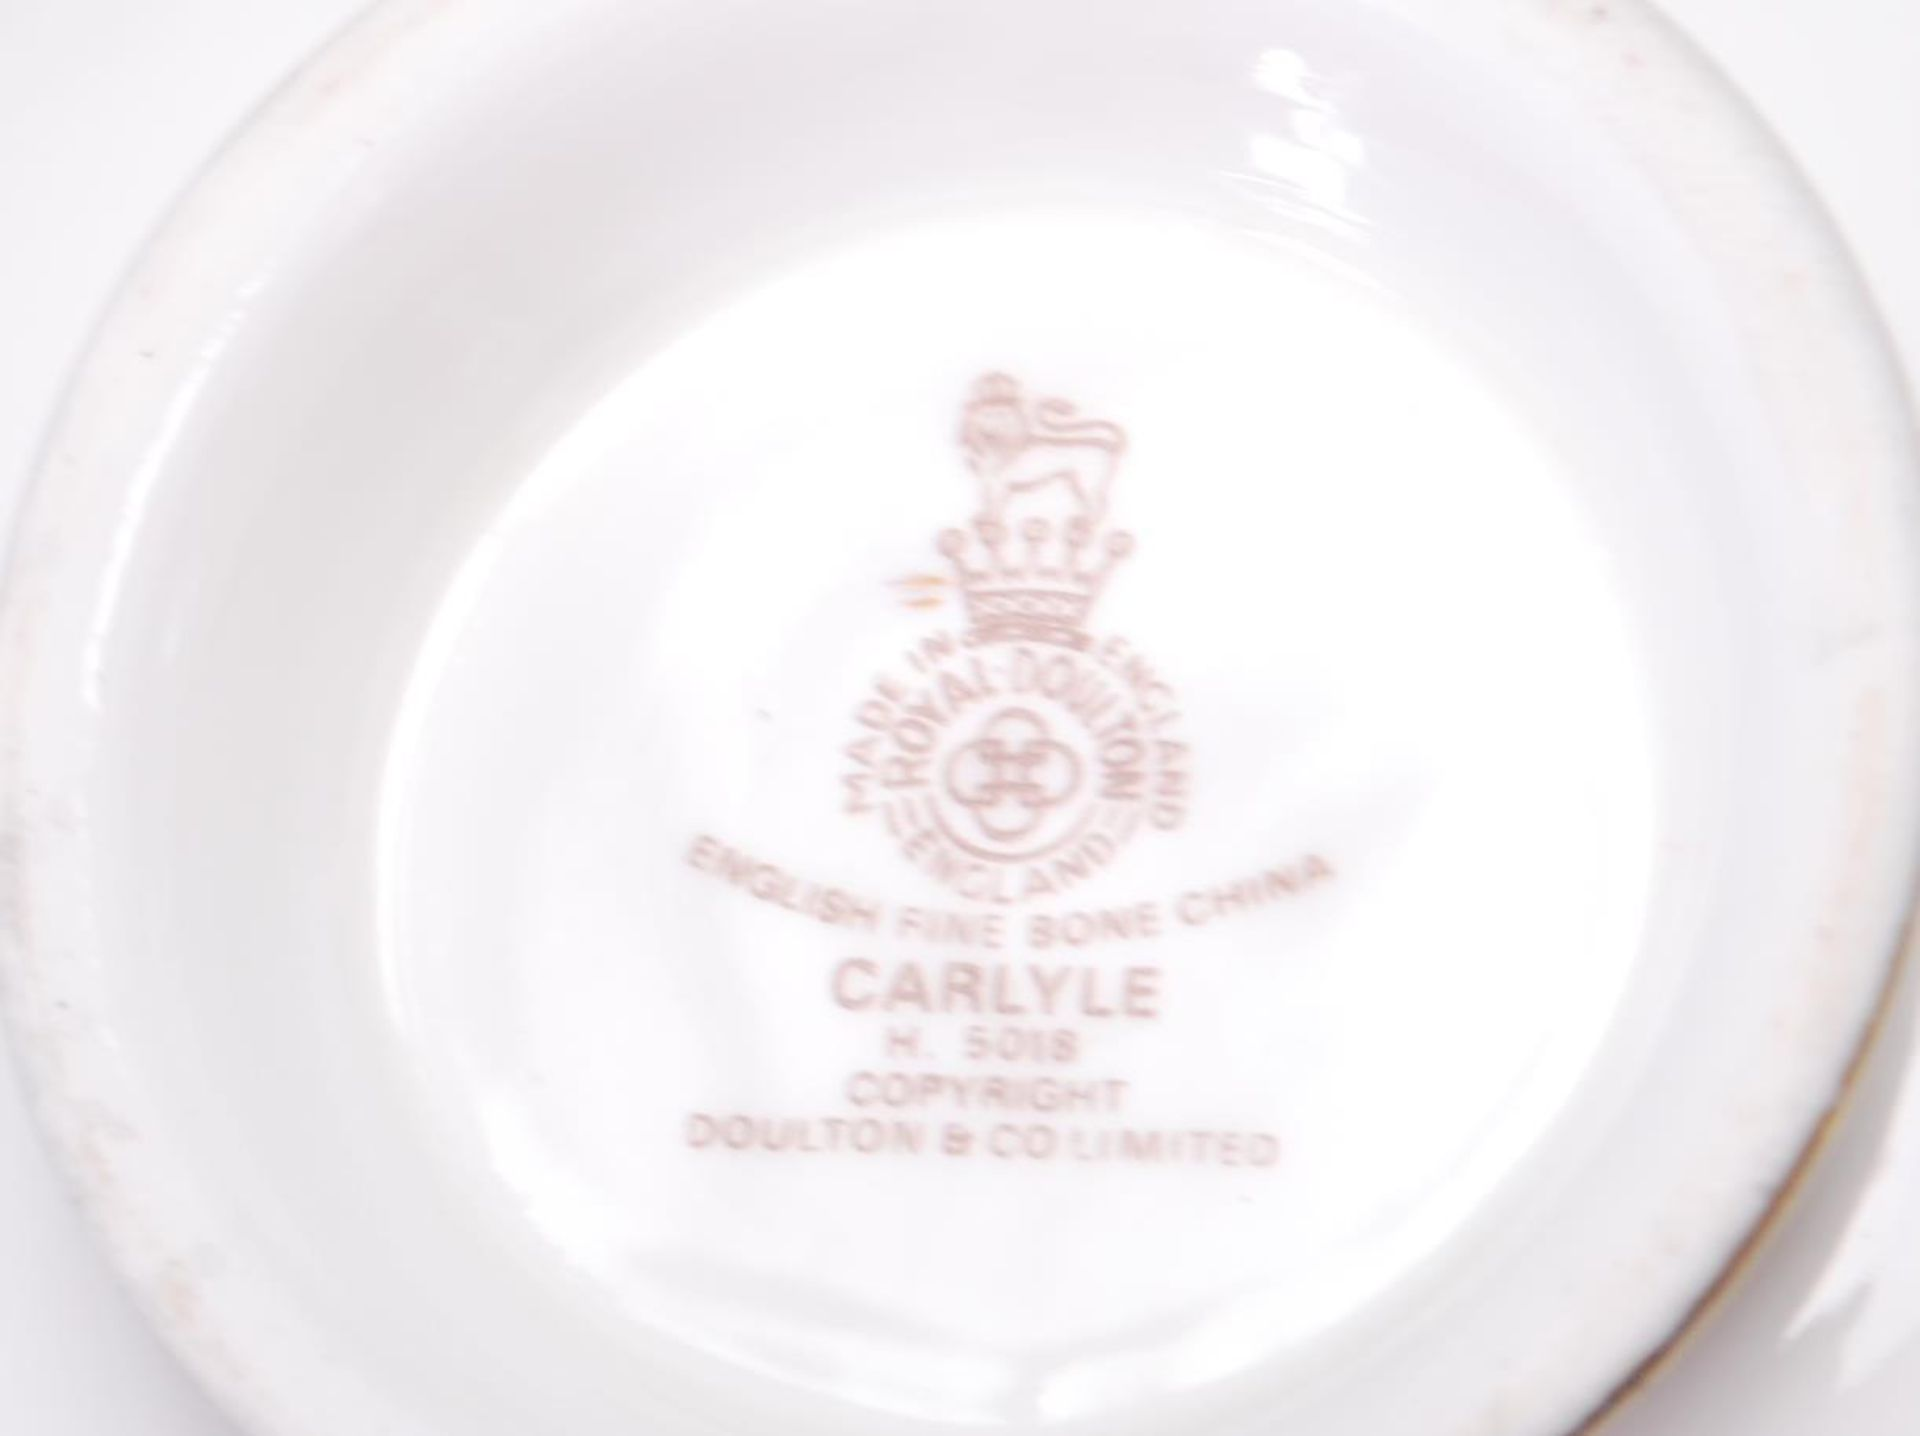 COLLECTION OF LATE 20TH CENTORUY ROYAL DOULTON FINE BONE CHINA DINNER SERVICE - Image 8 of 8